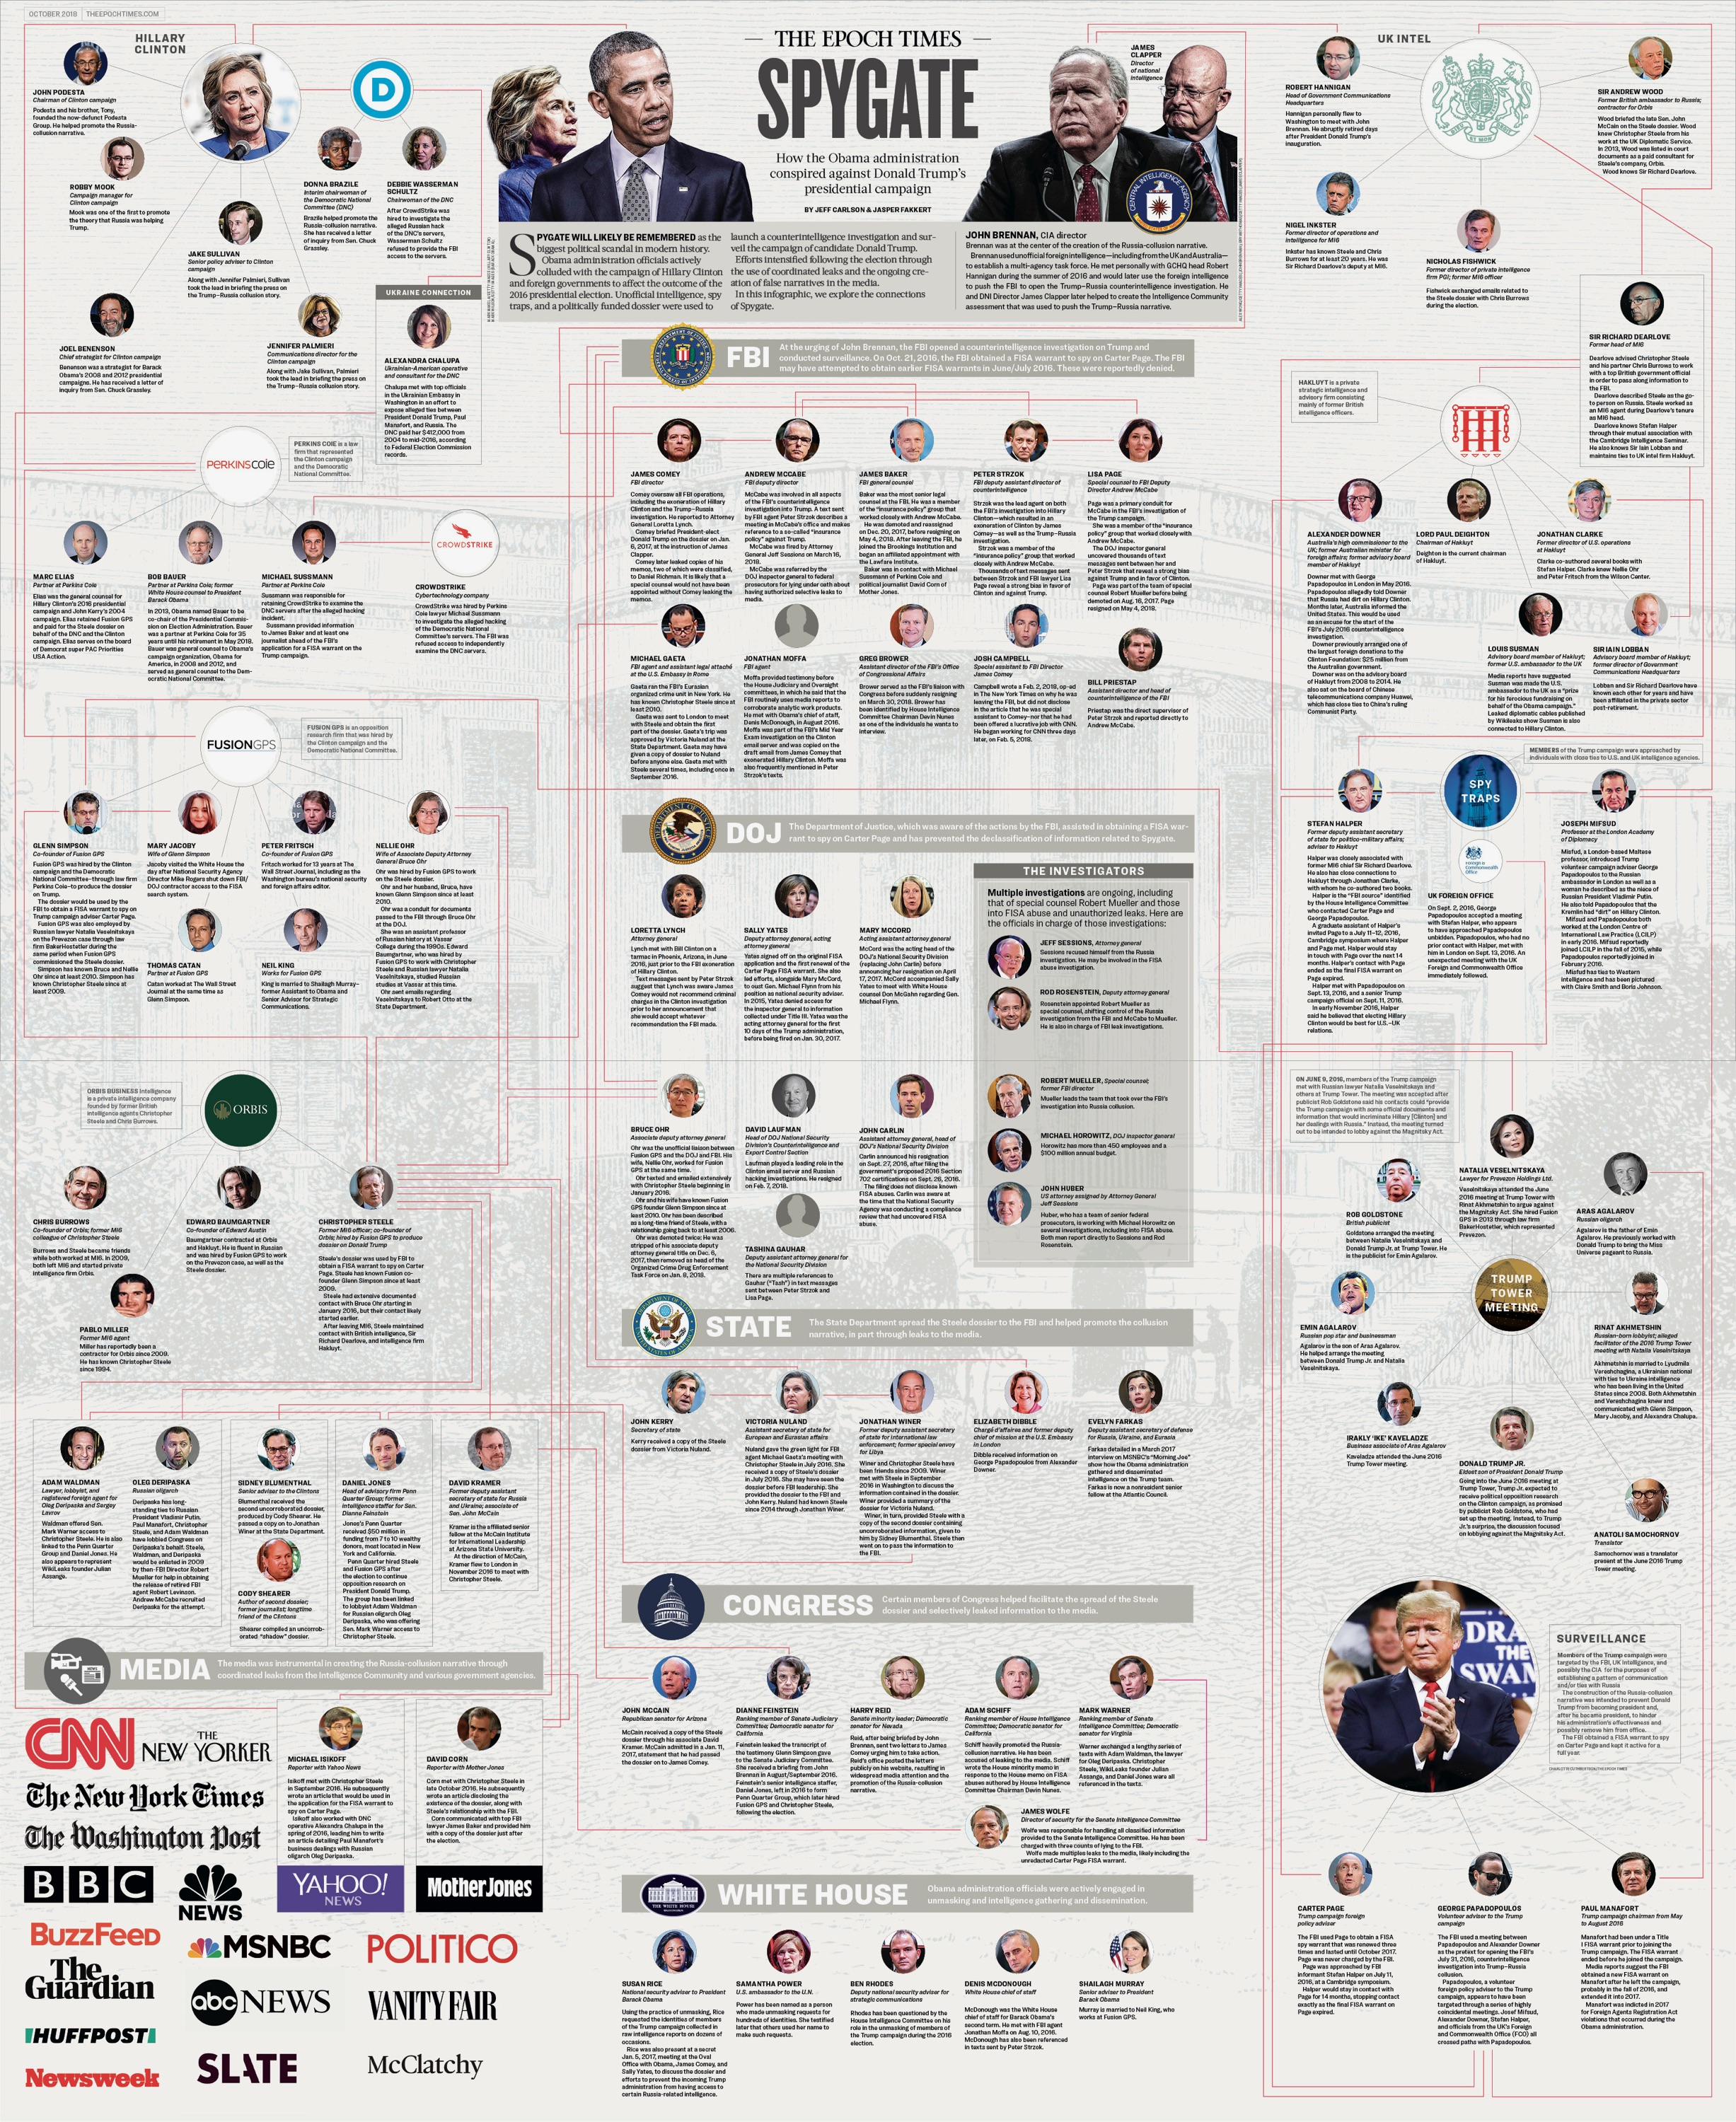 Spygate Infographic from the Epoch Times